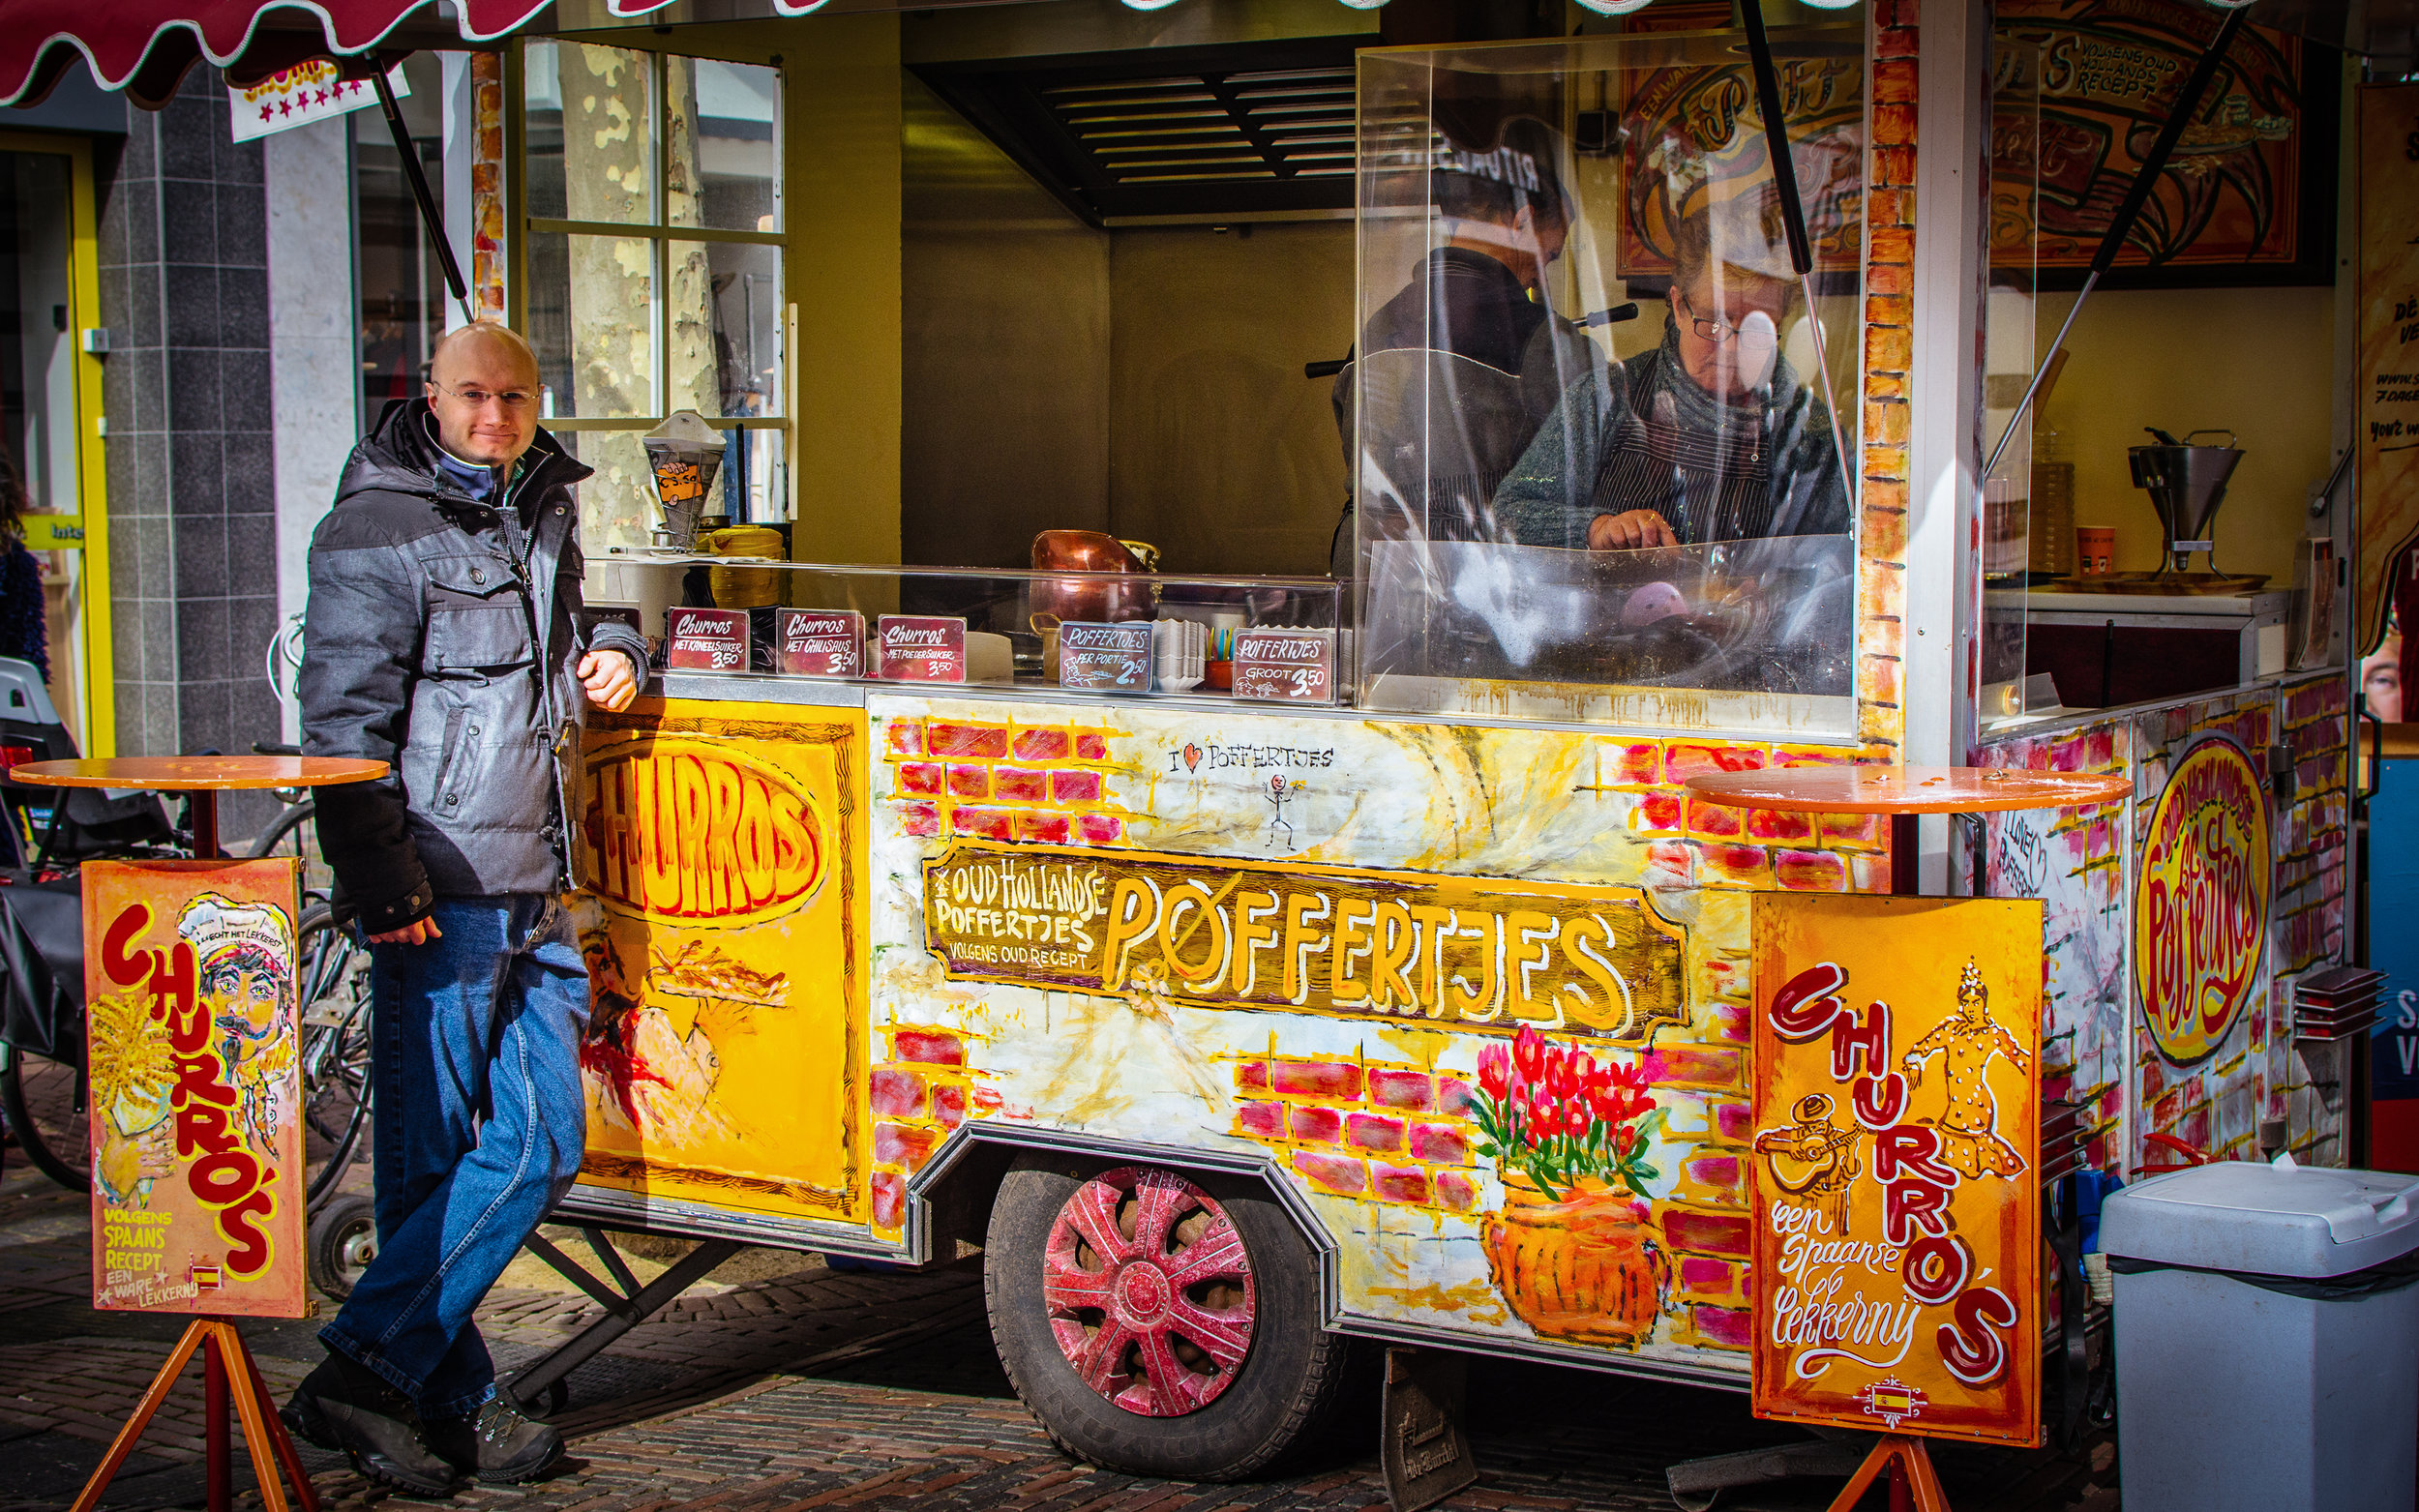 So, I mentioned stroopwafels already but these are right up there too! Try the poffertjes! Don't load them down with toppings. Just take 'em with icing sugar and butter and enjoy.